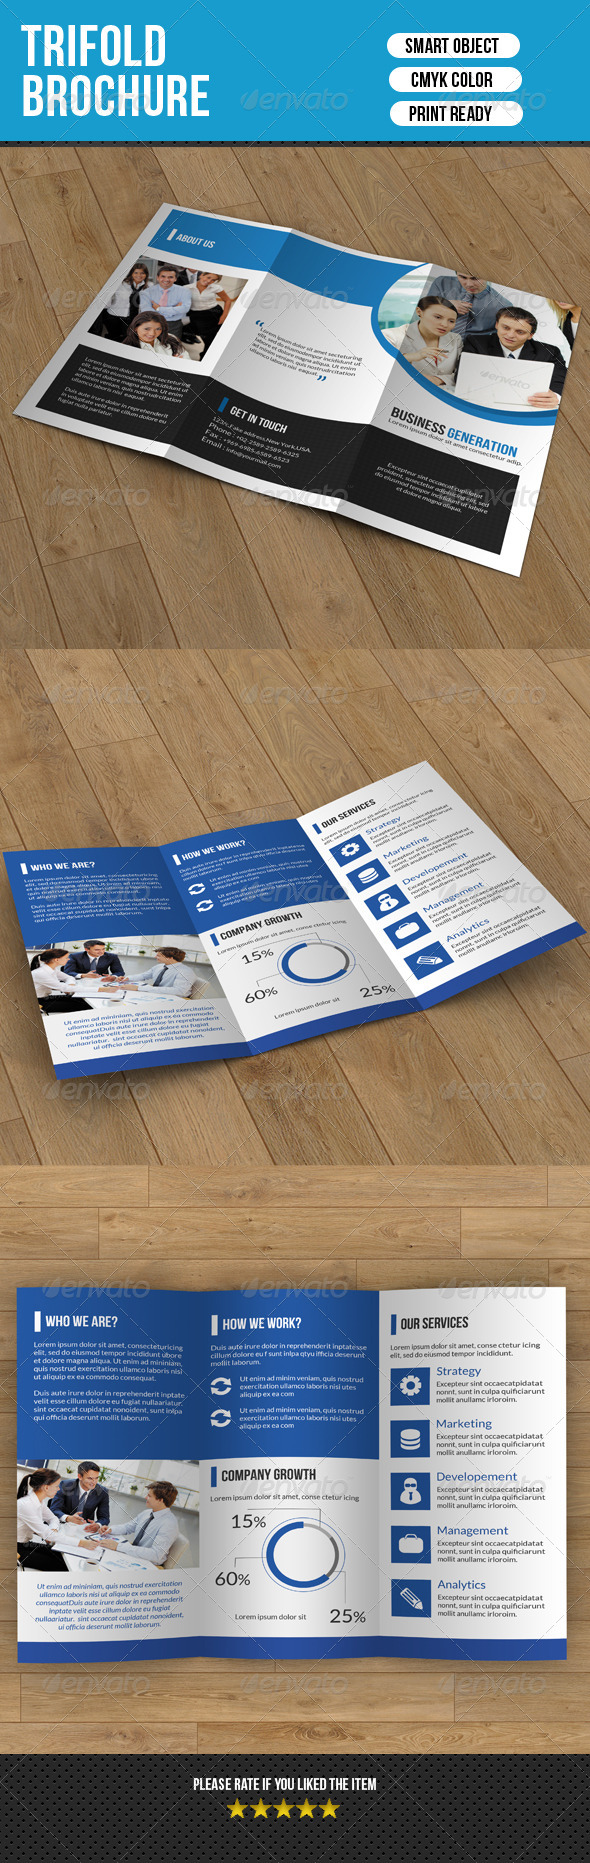 GraphicRiver Trifold Business Brochure-V37 8337604